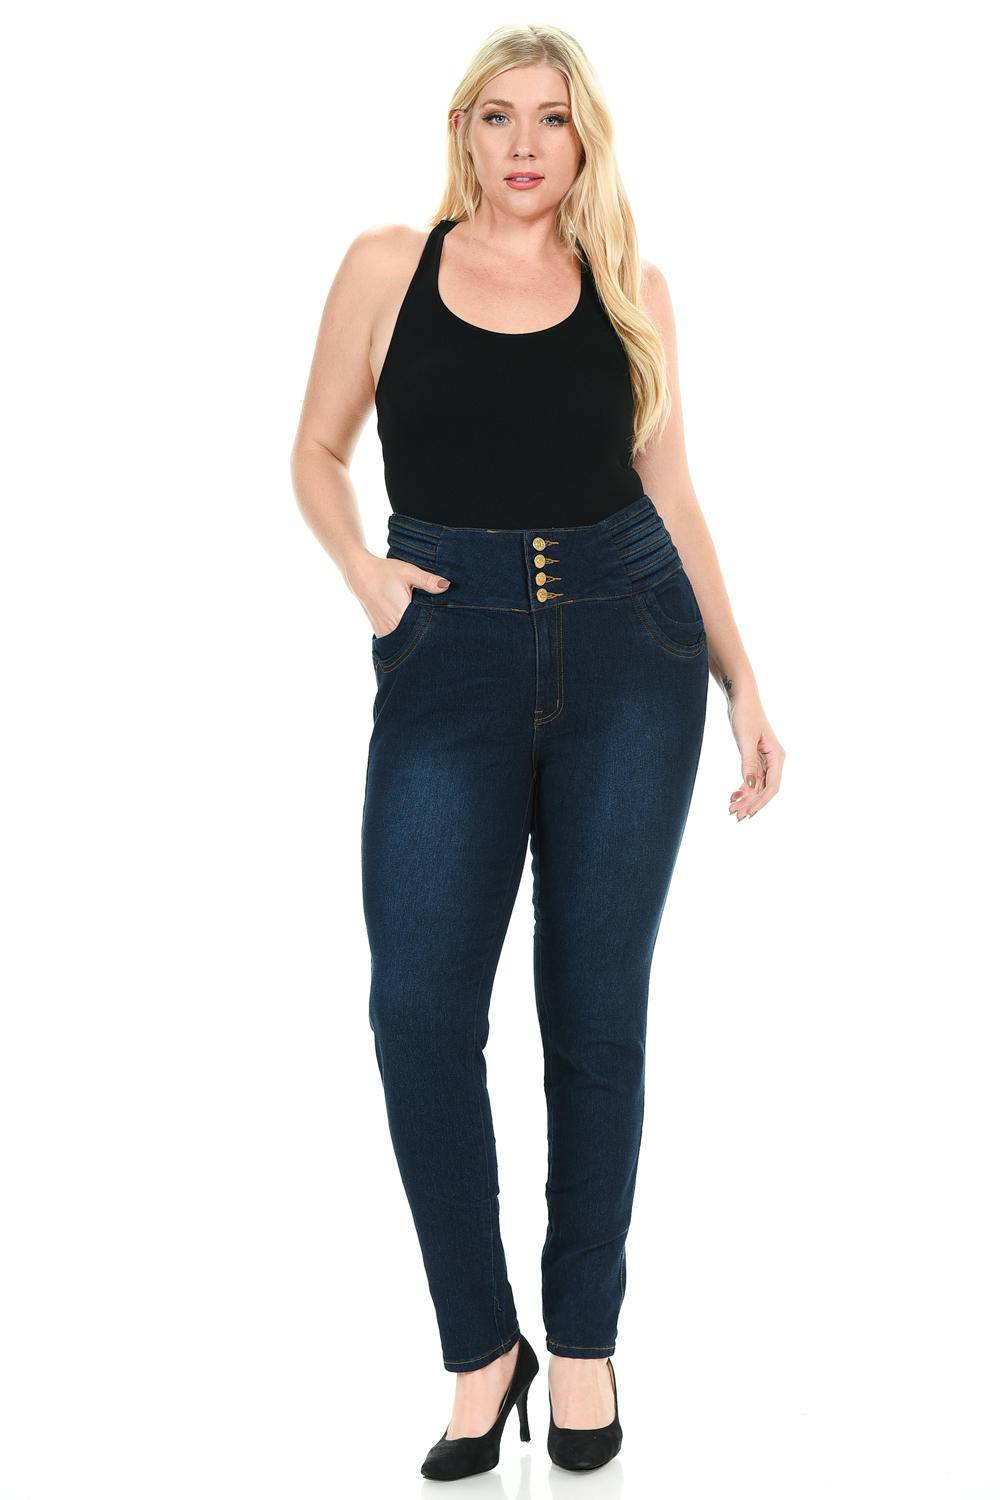 - Pasion Women's Jeans · Plus Size · High Waist · Push Up · Style N497